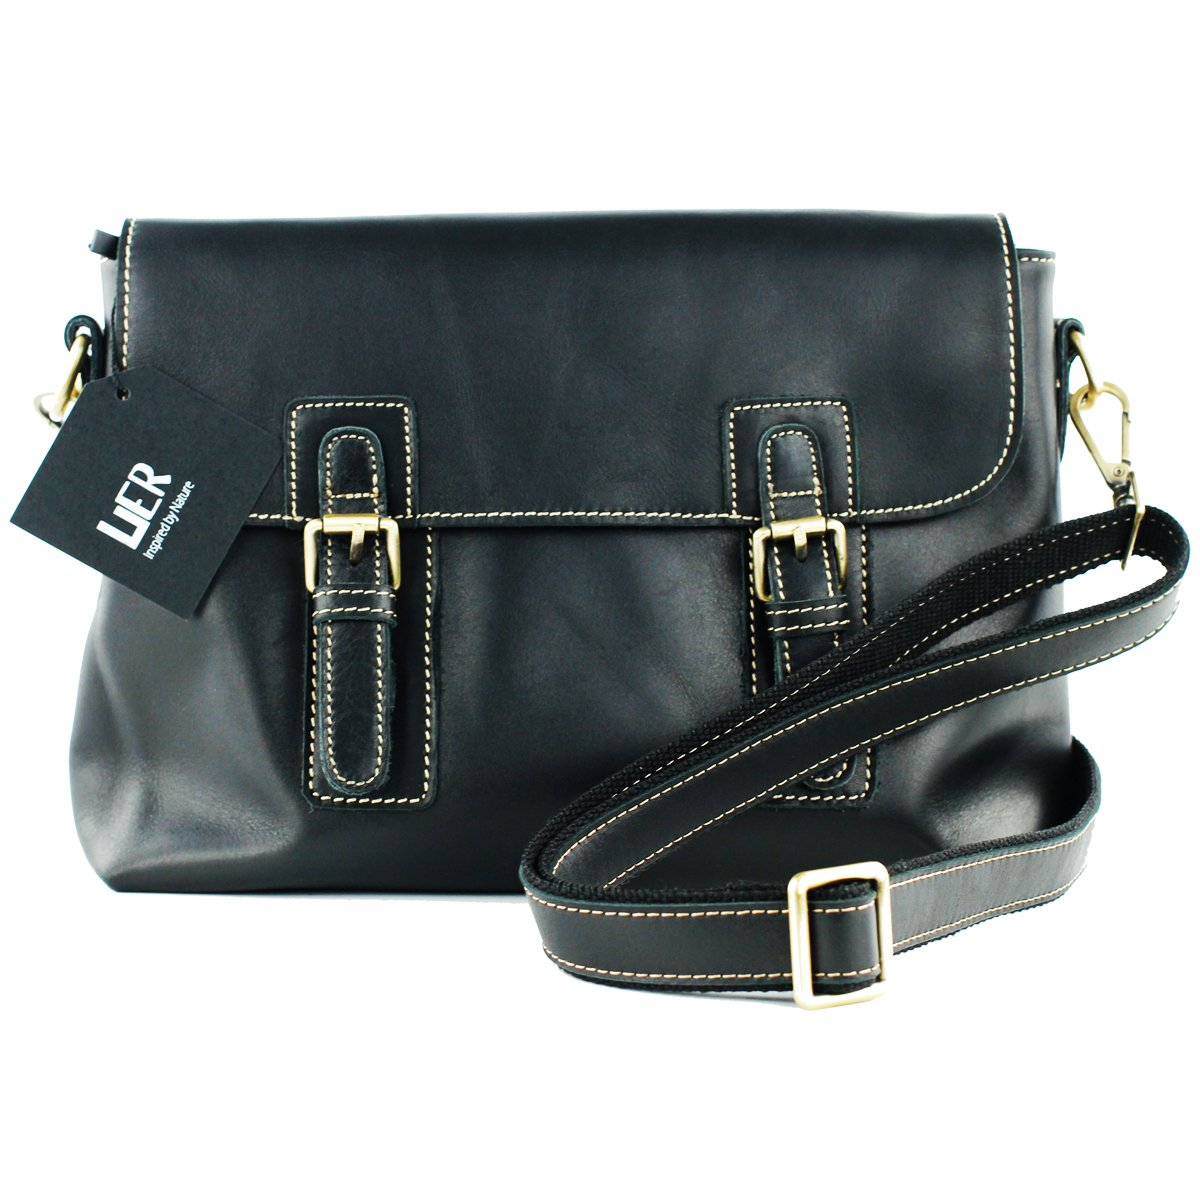 UER Unisex Soft Genuine Leather Classic Messenger Shoulder Bag with Brass Hardware